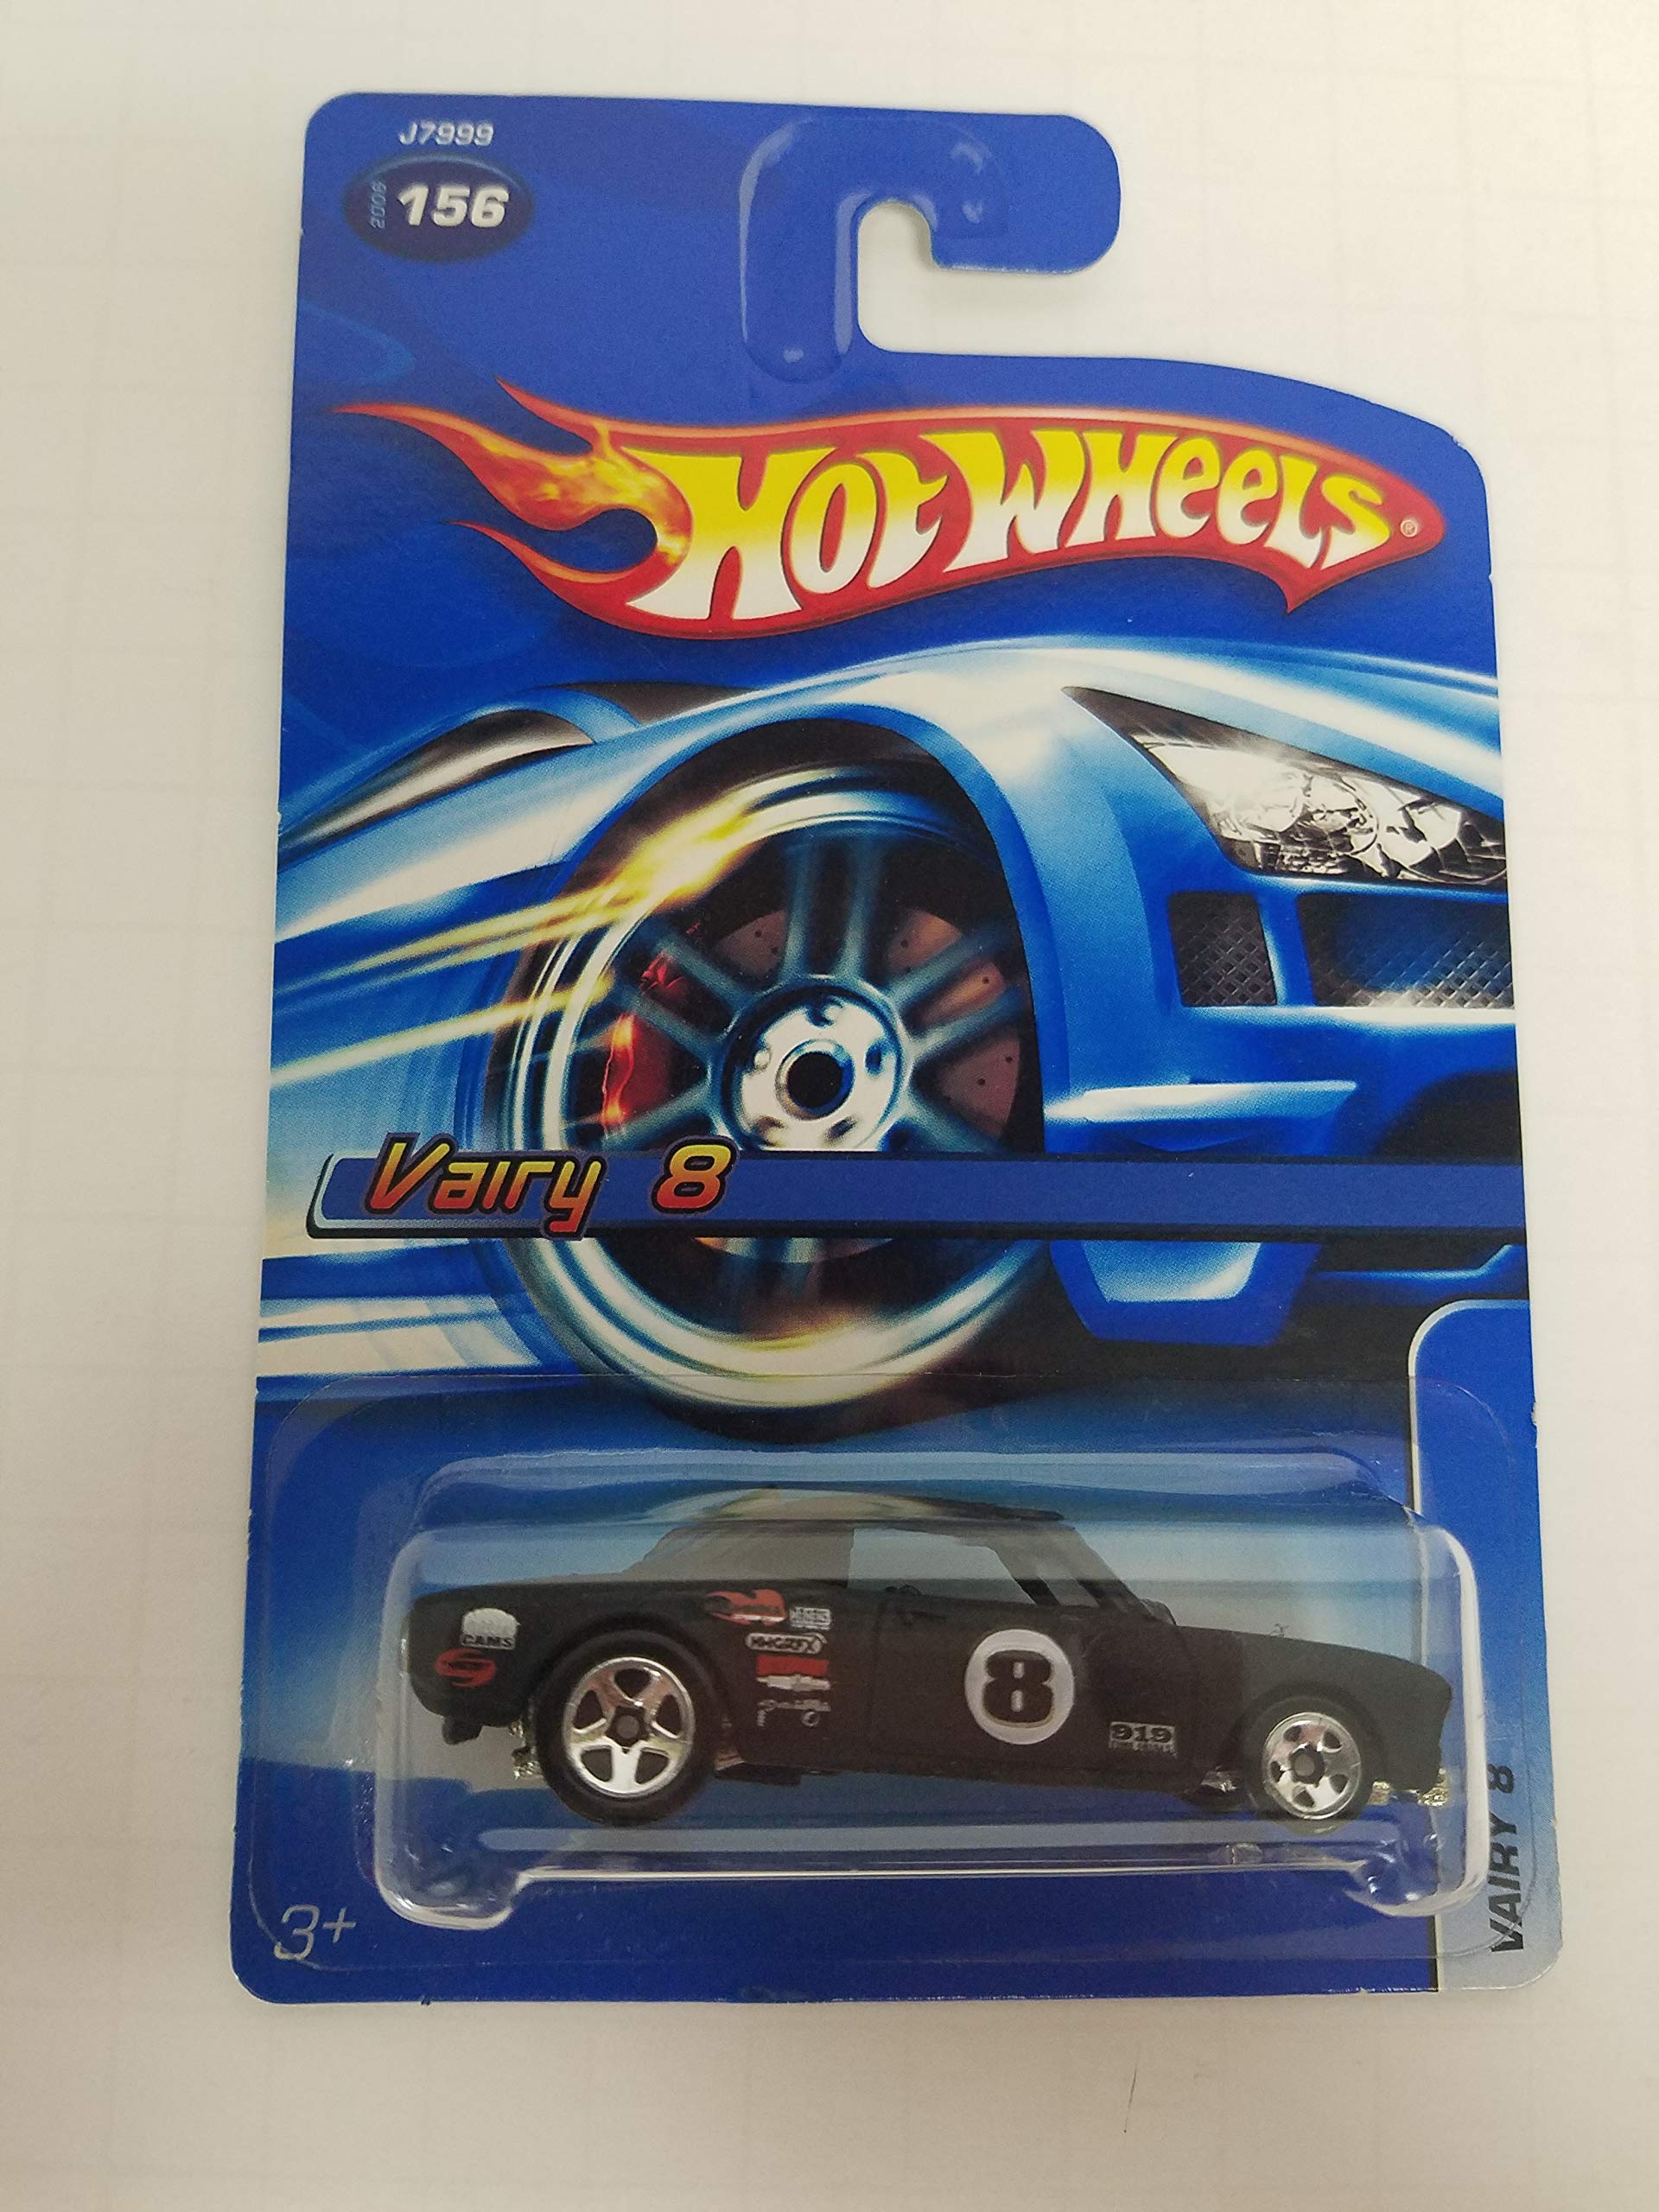 Vairy 8 Black Color No.156 Hot Wheels 2006 1/64 scale diecast car